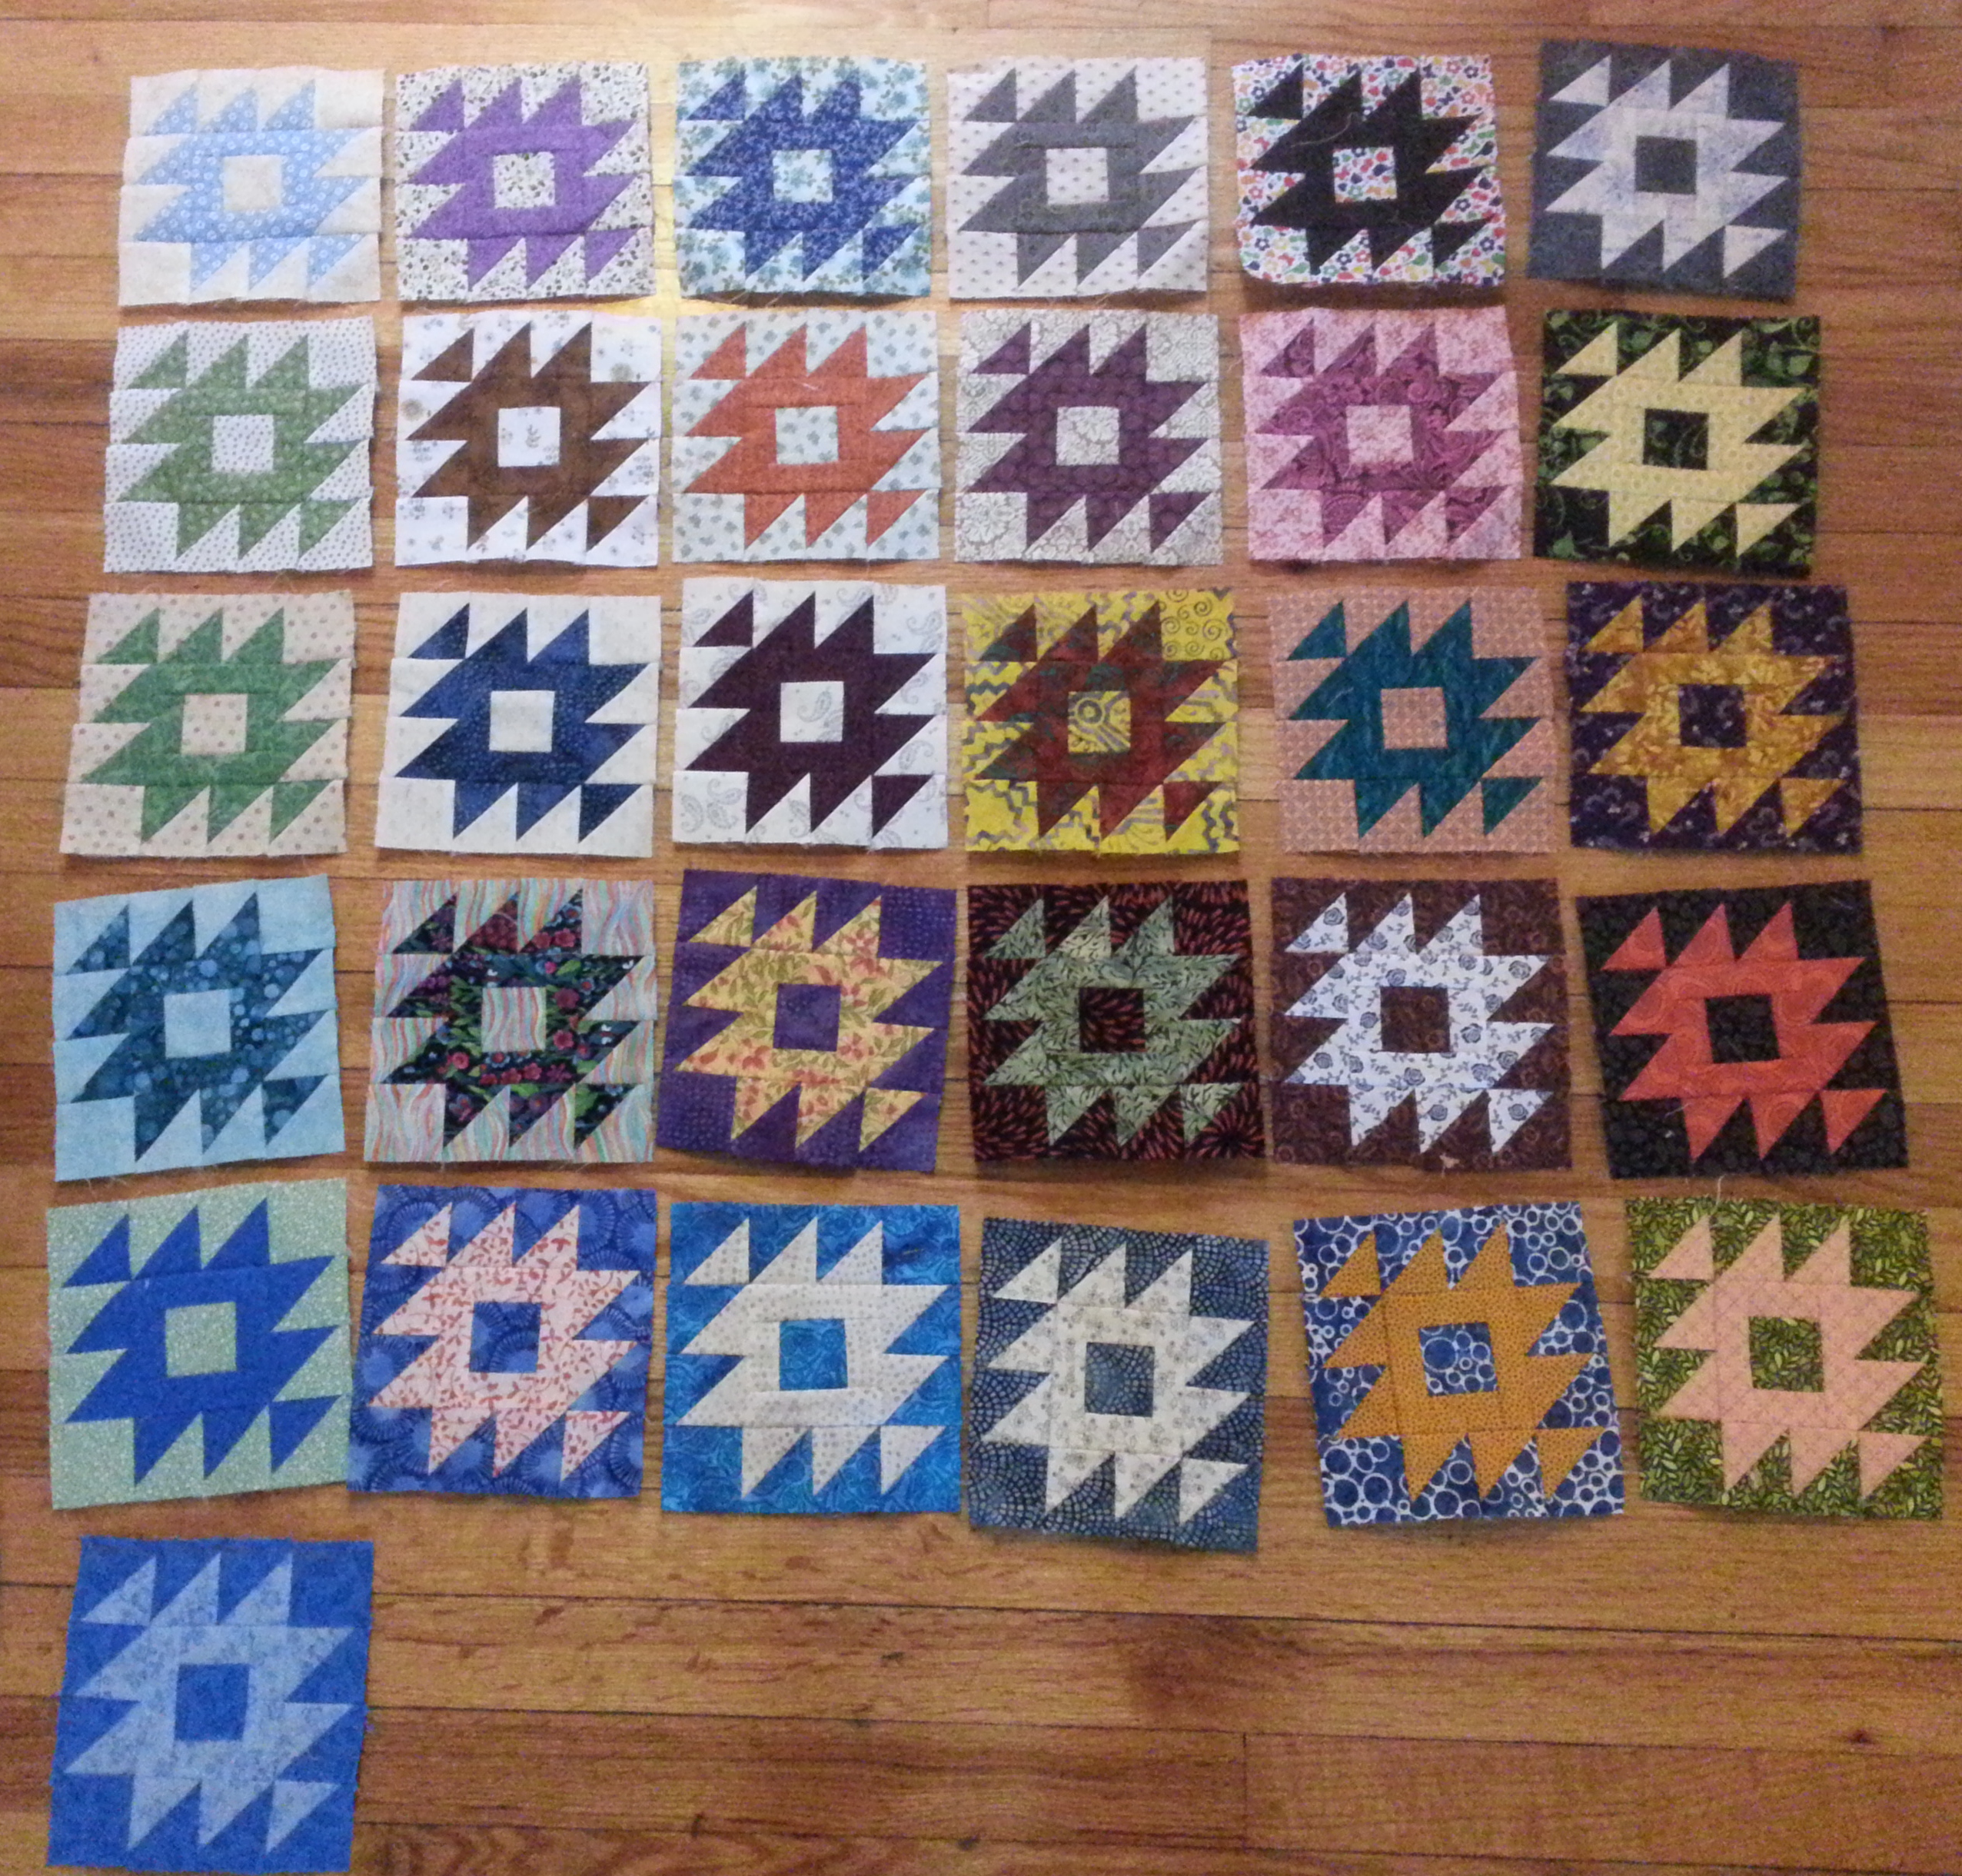 quilt blocks on floor